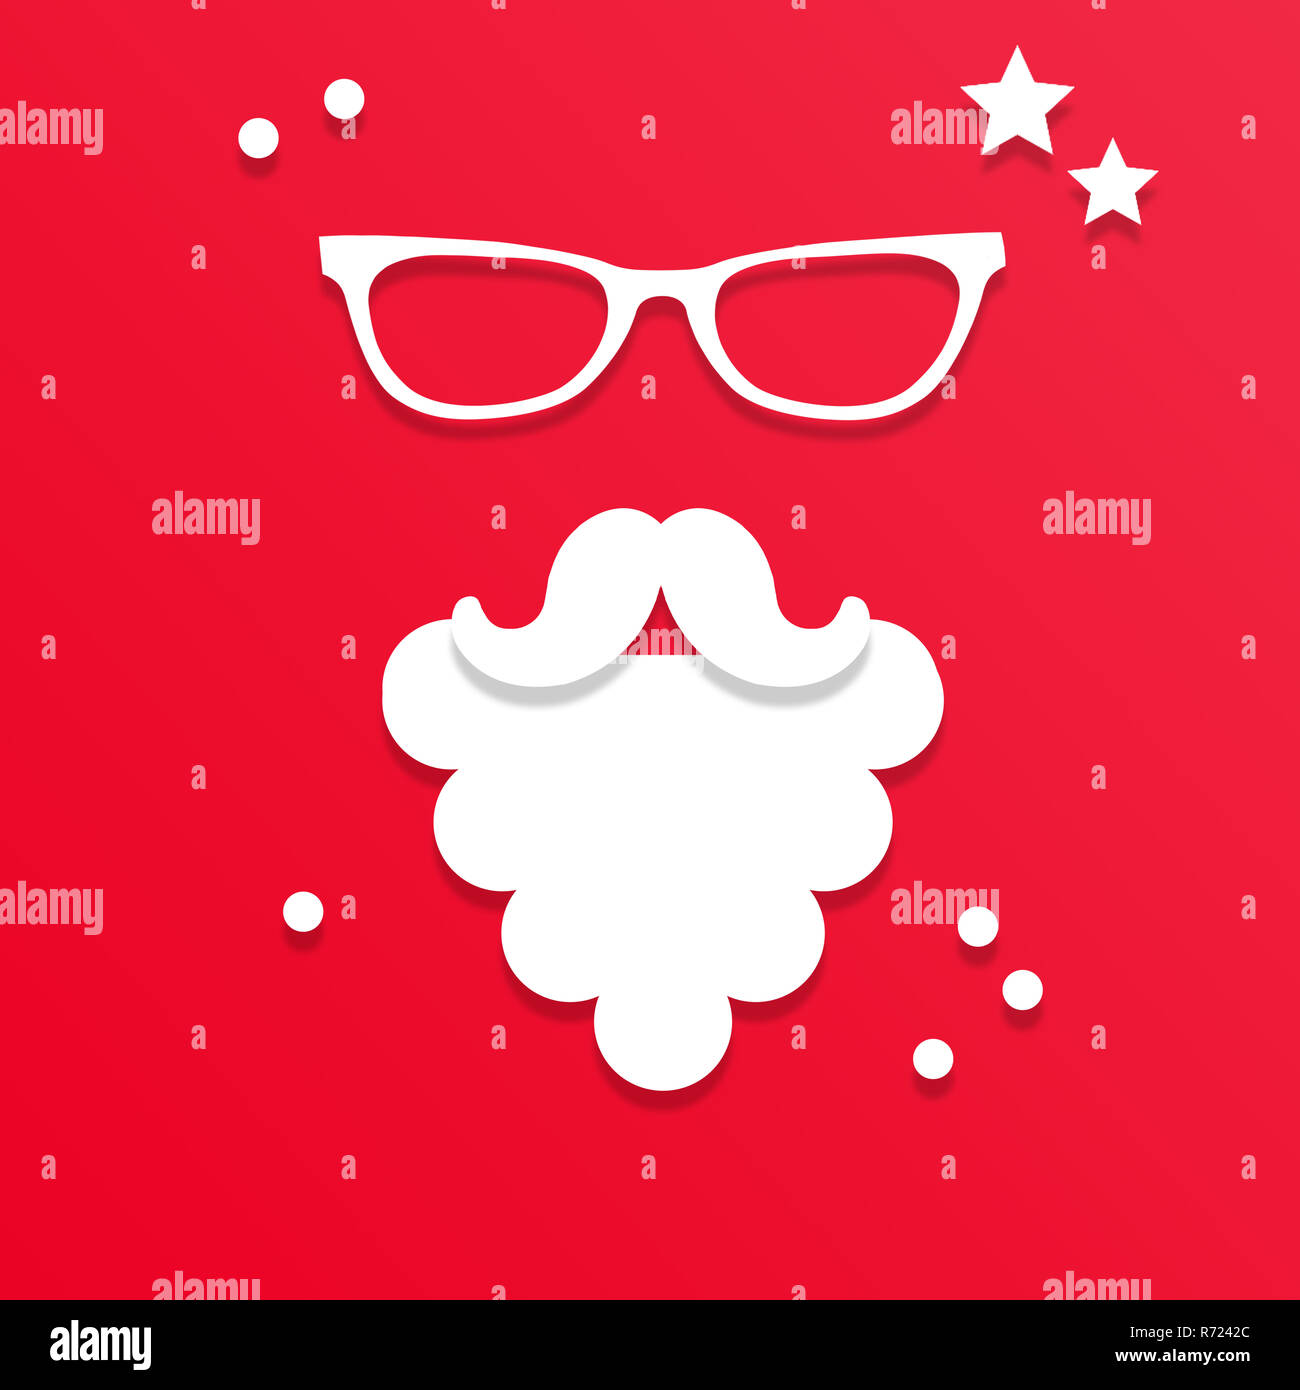 cac6056936c Santa Claus in glasses on red background. Santa Claus with white beard and  mustache in